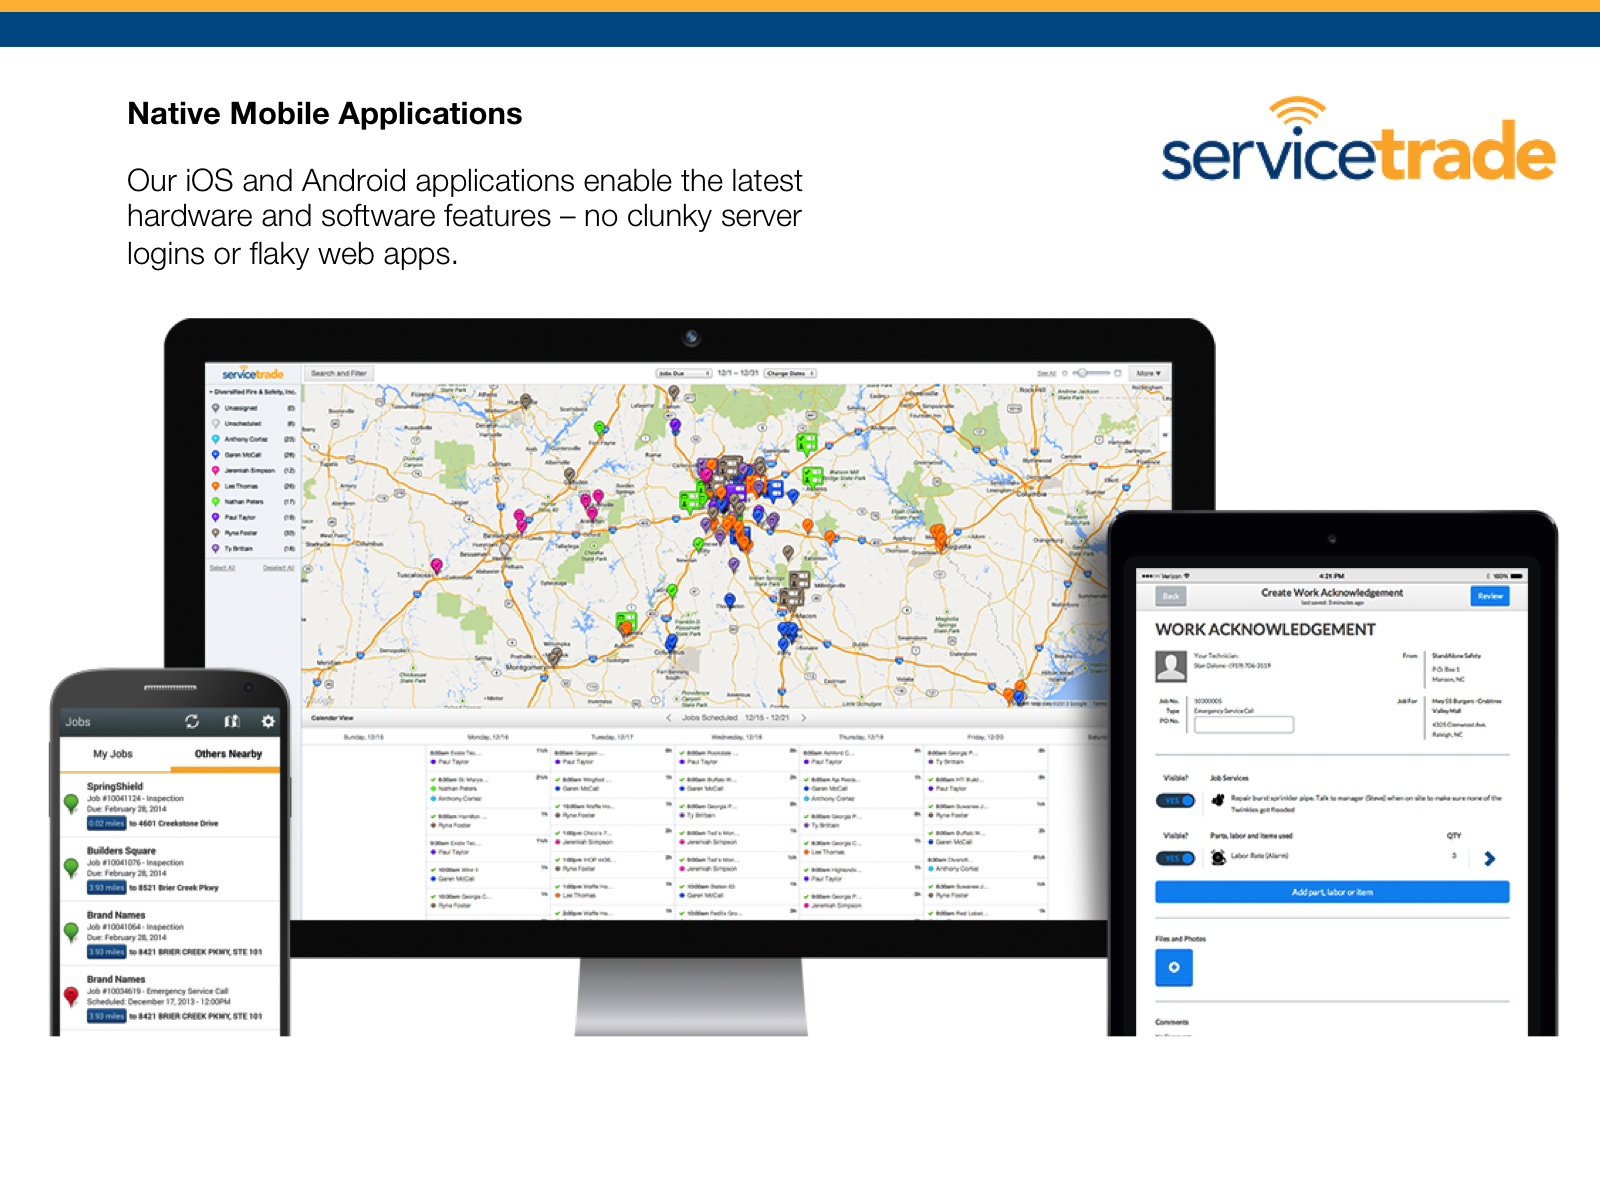 ServiceTrade Demo - Native Mobile Applications